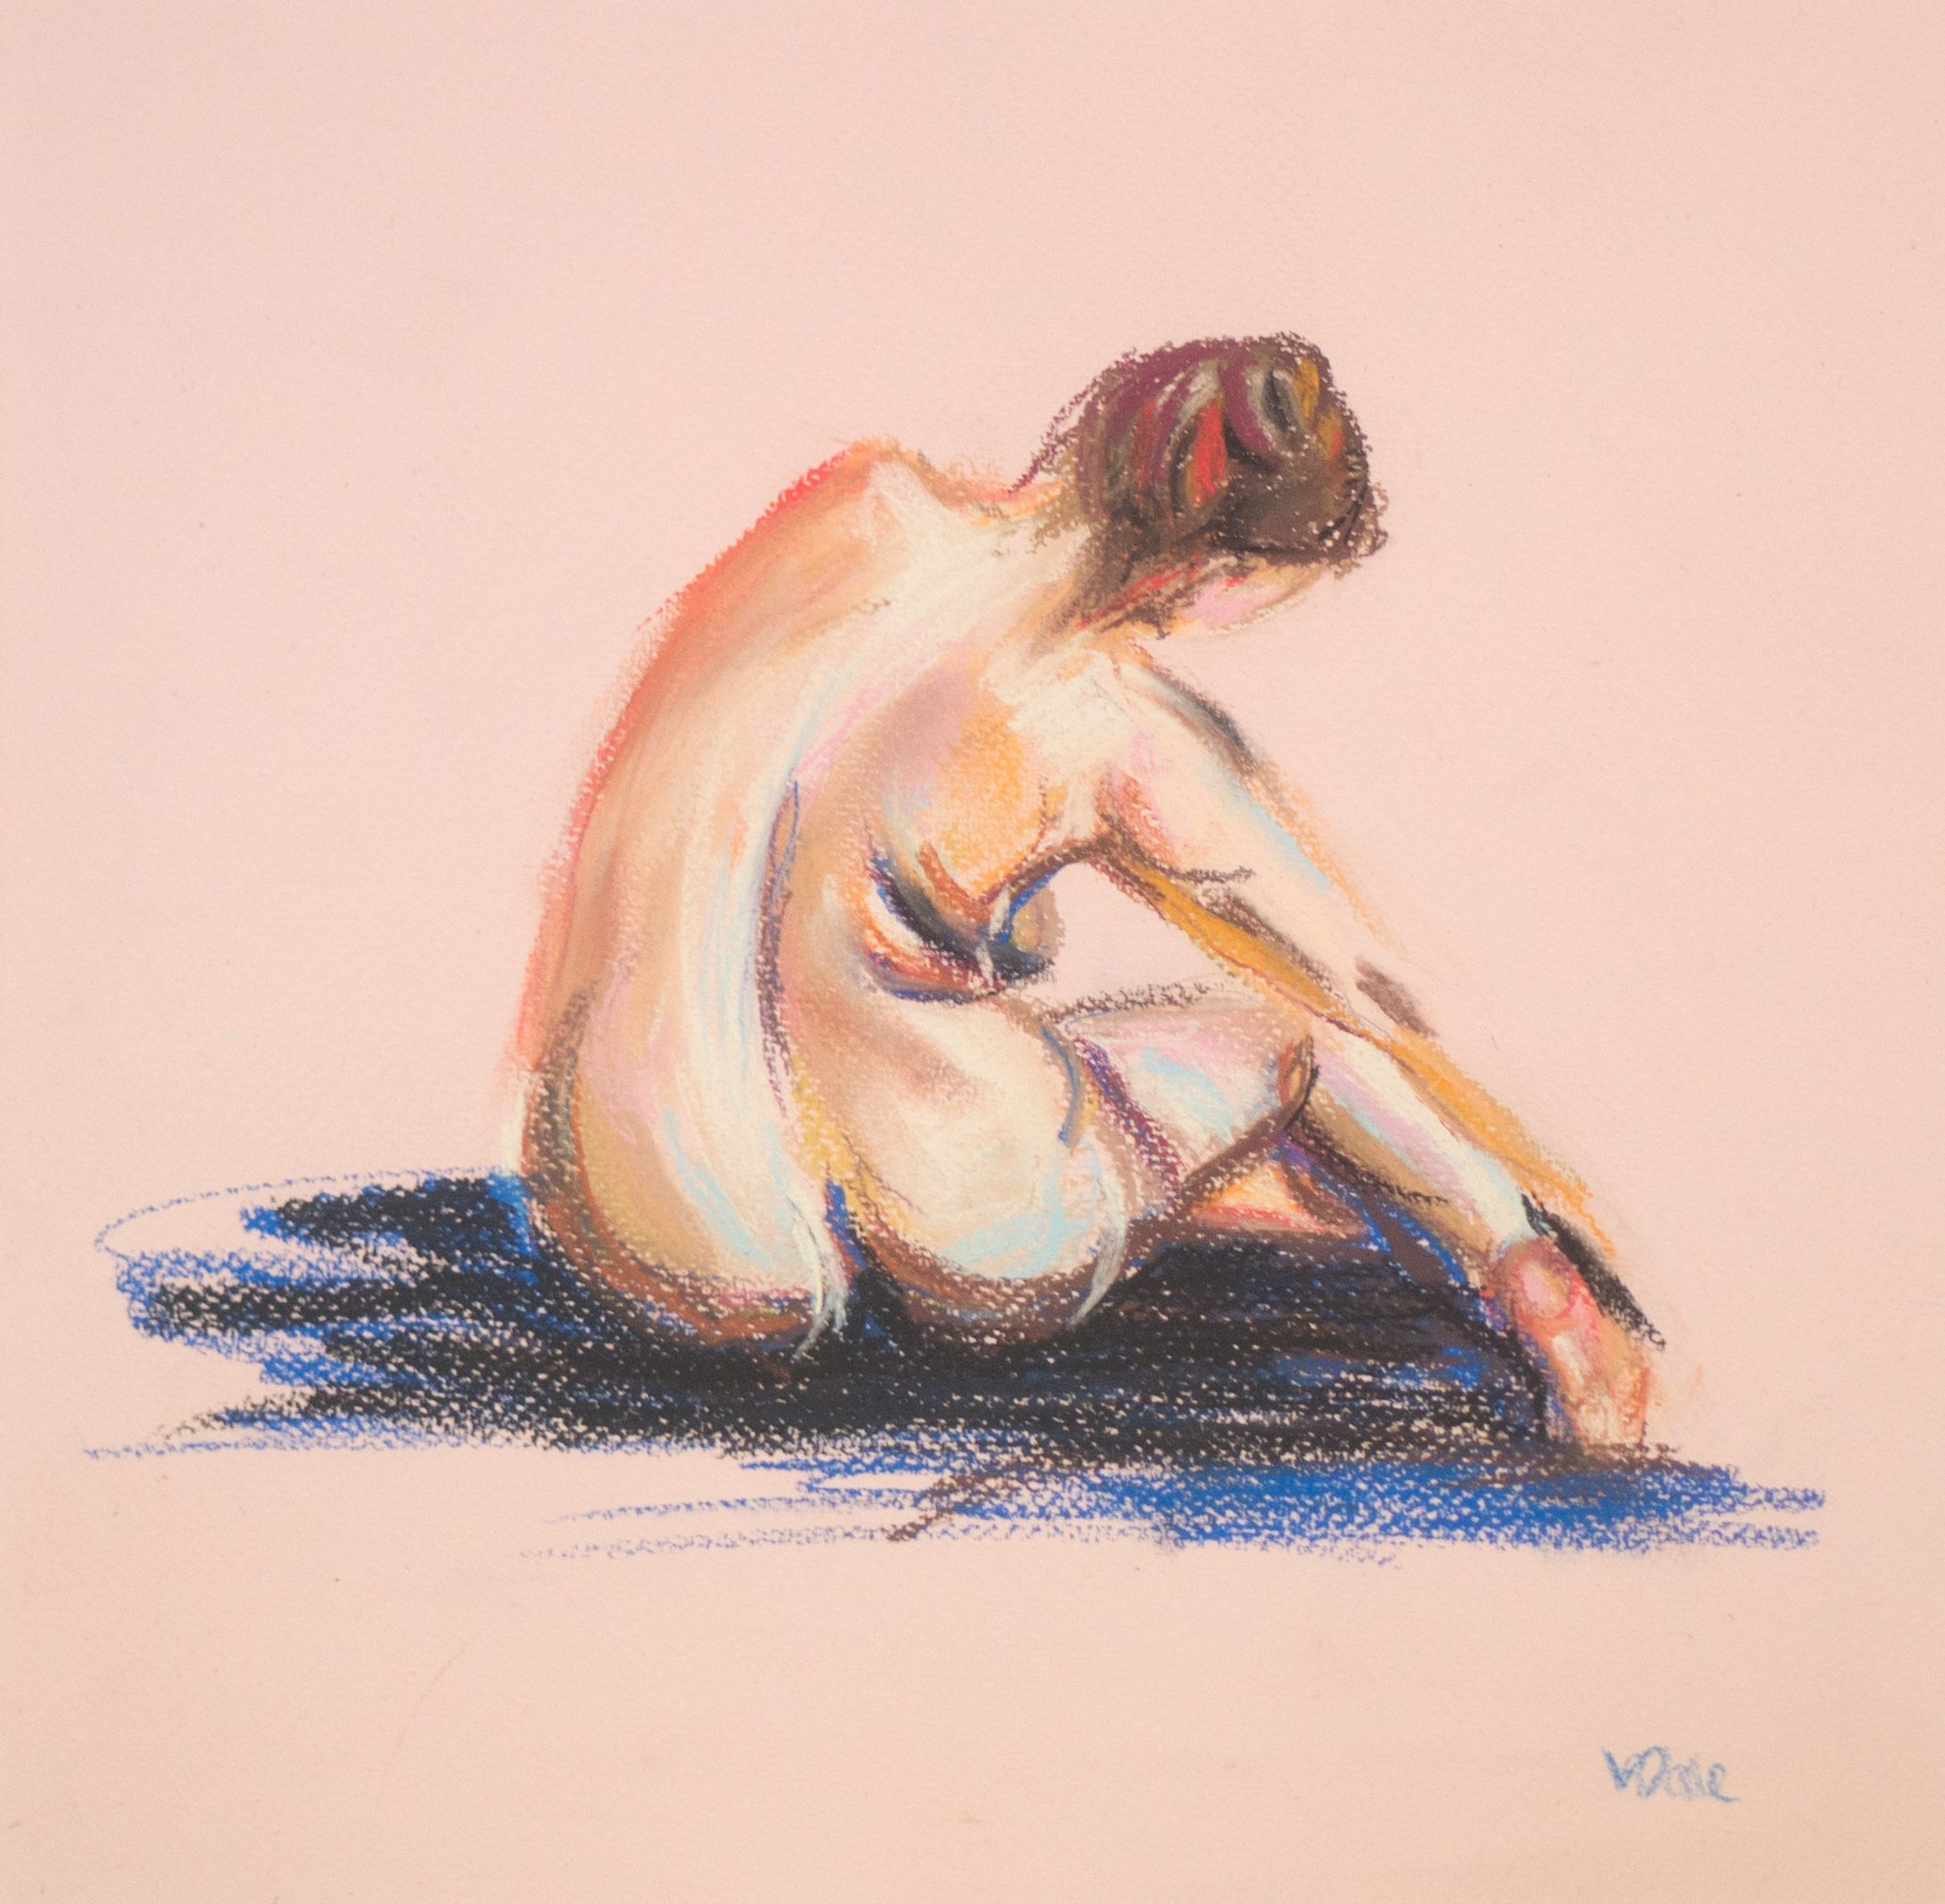 Nude pictures of vince ferelli